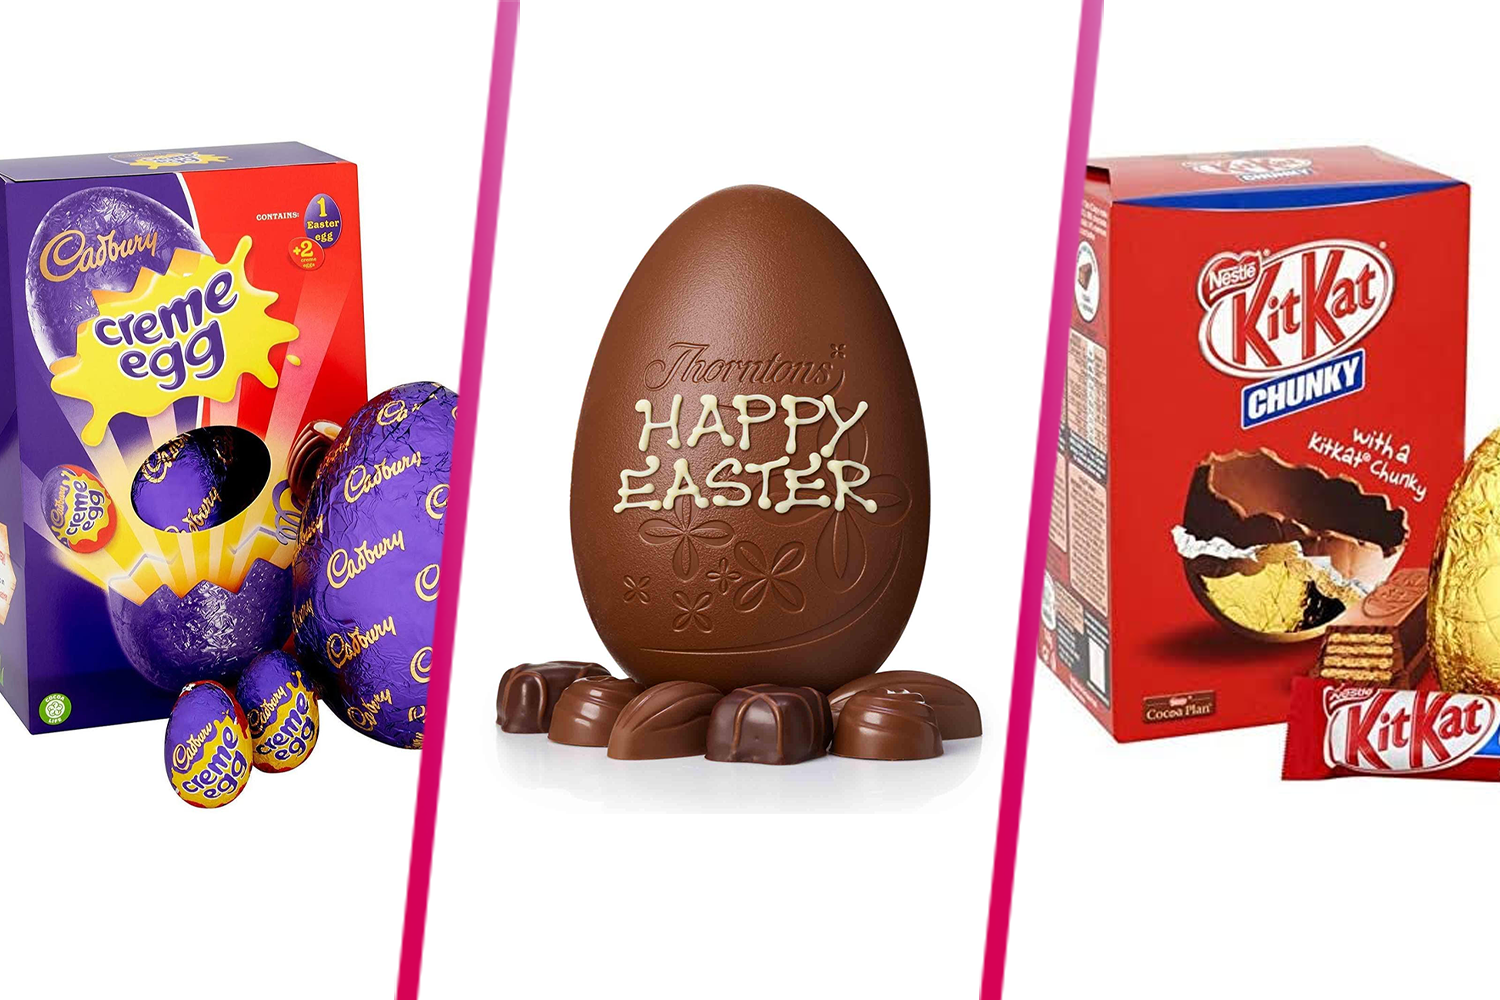 Easter egg prices slashed by half by stores such as Tesco and Asda